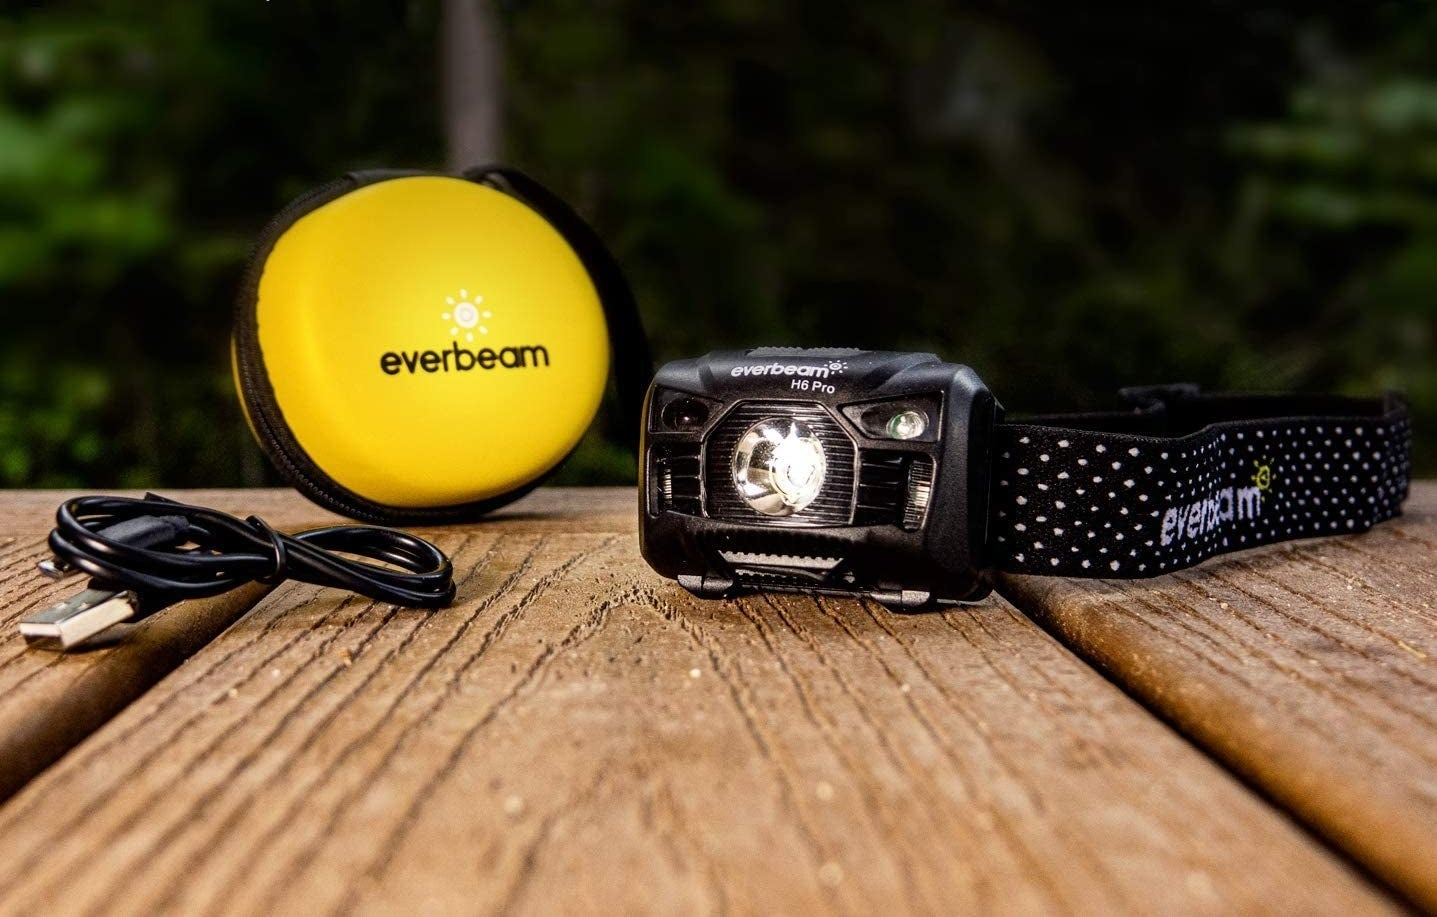 The rechargeable headlamp next to a USB cord and a small, round, protective case